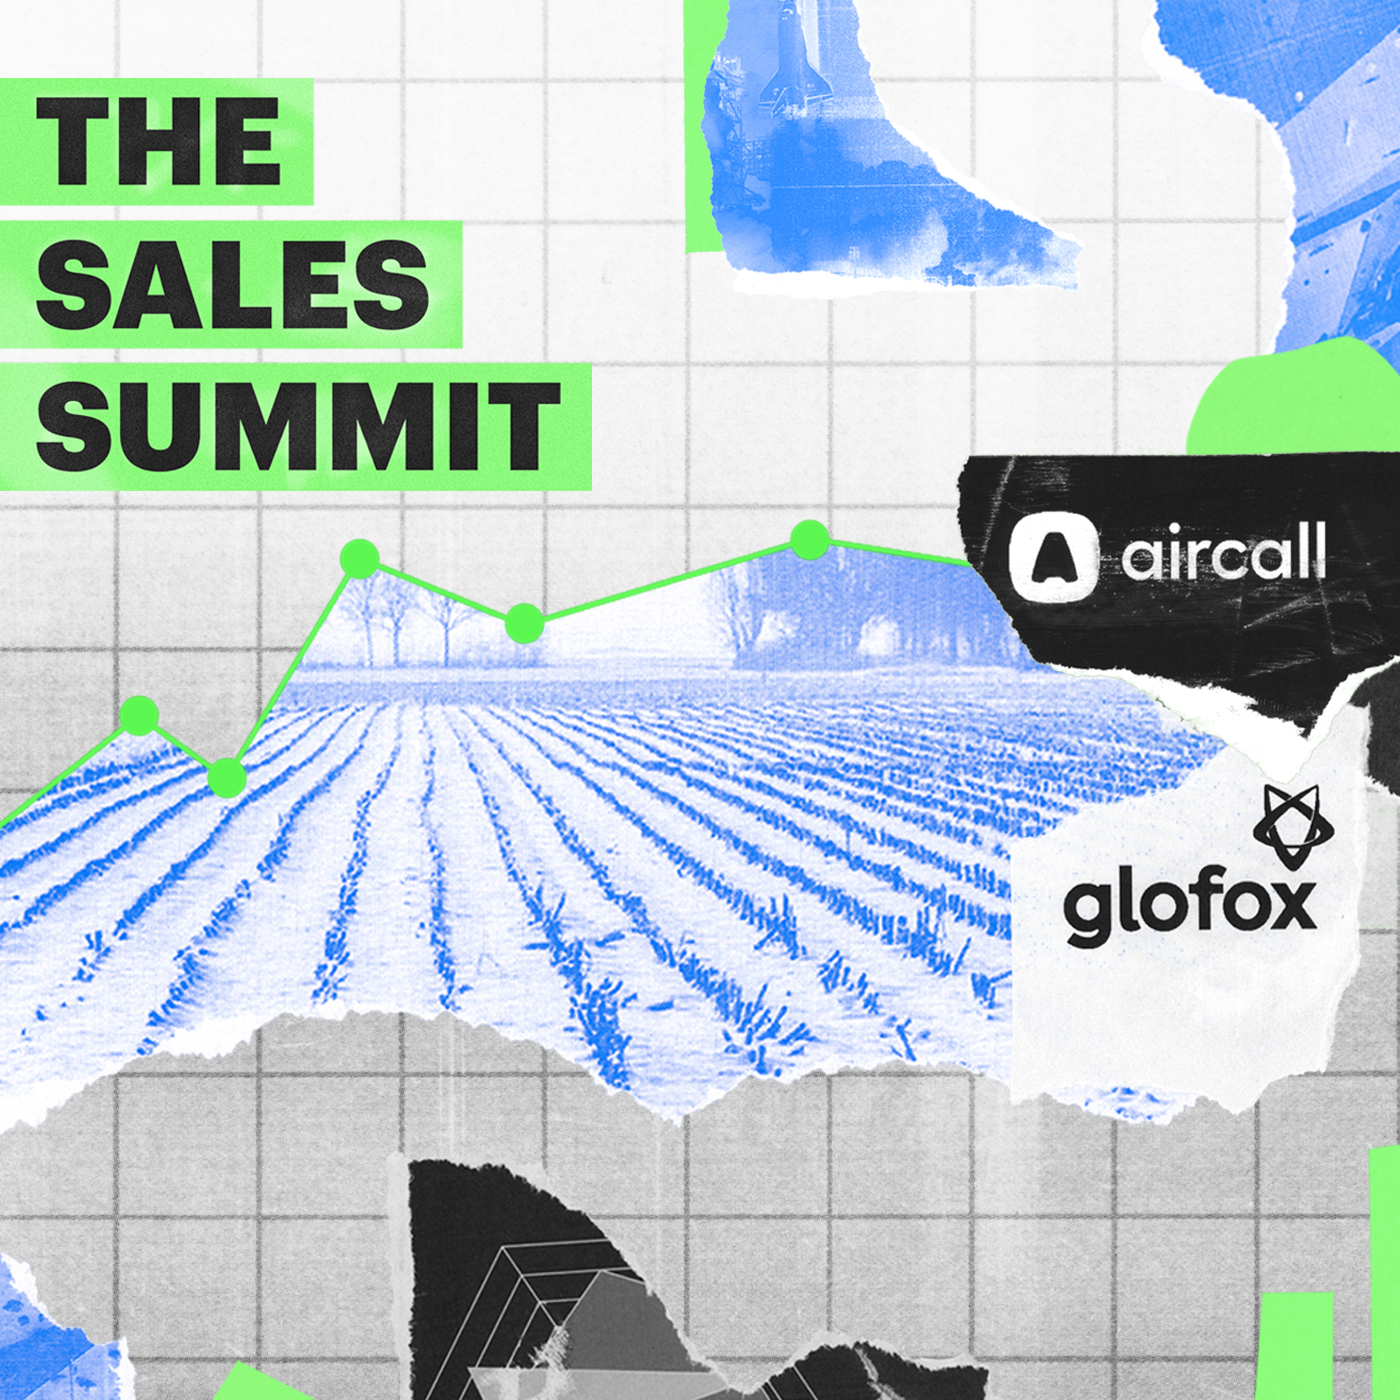 The Sales Summit: Challenges of growth